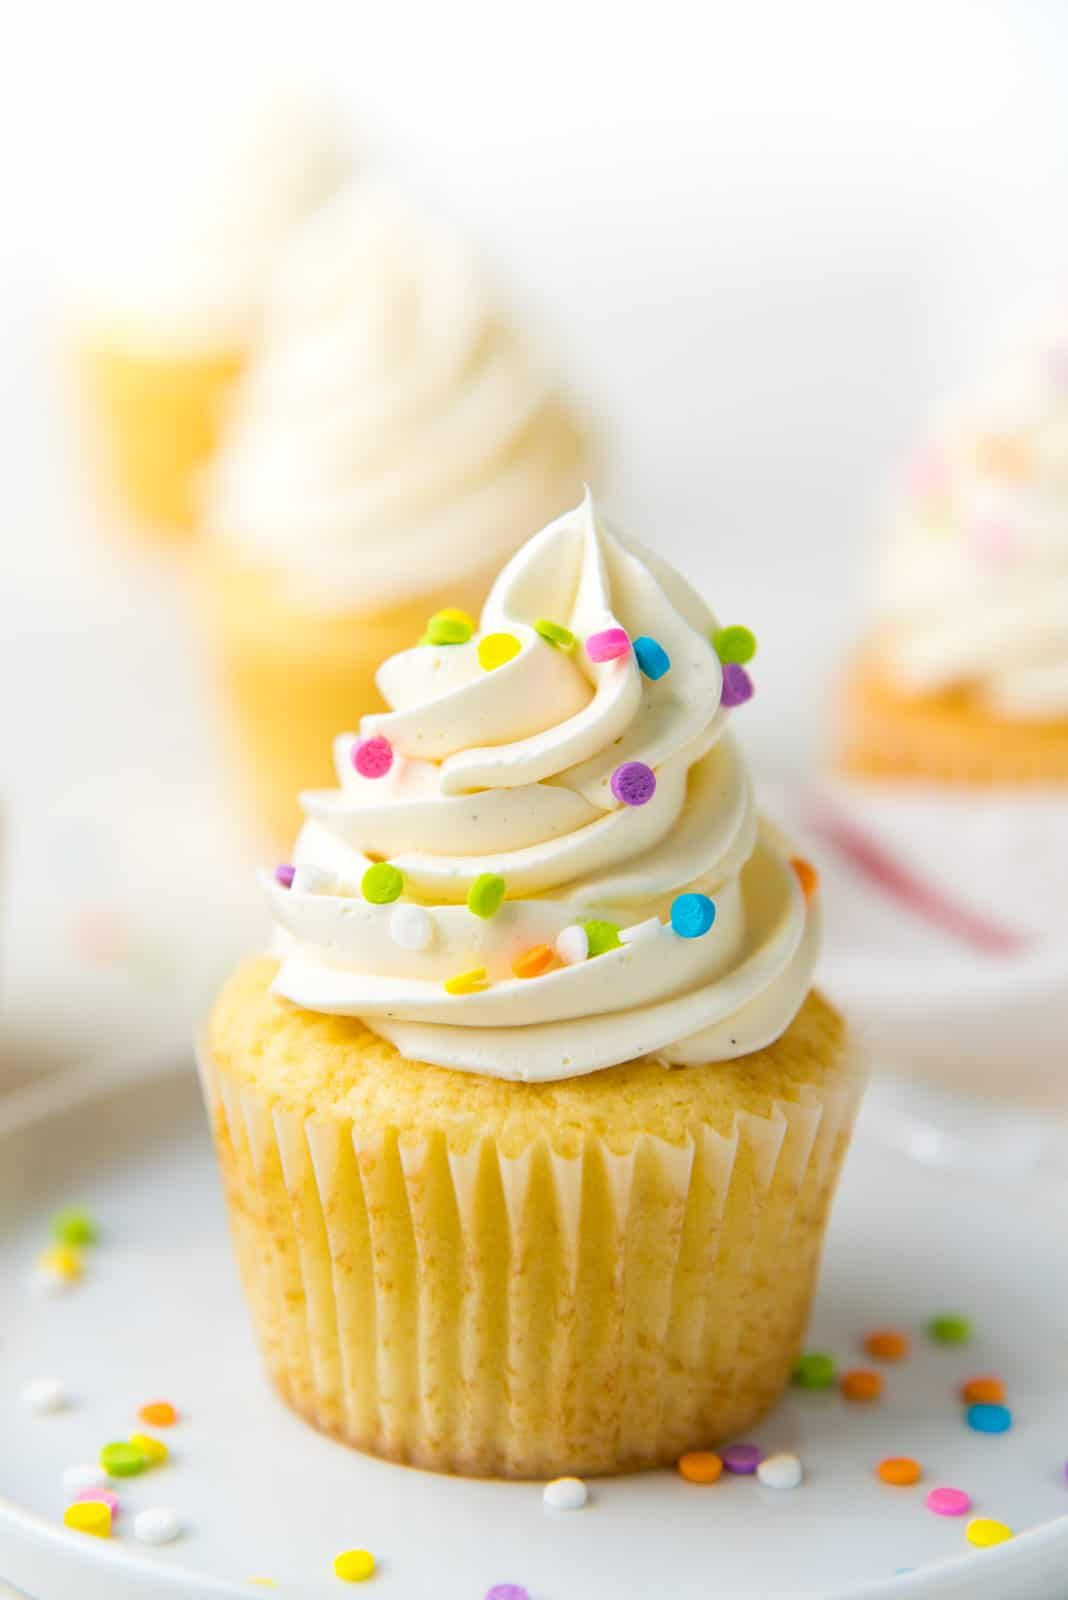 The Only Vanilla Cupcake Recipe You Will Need Get All The Tips You Need To Make Perfect Moist And S In 2020 Cupcake Recipes Vanilla Cupcake Recipe Sour Cream Recipes